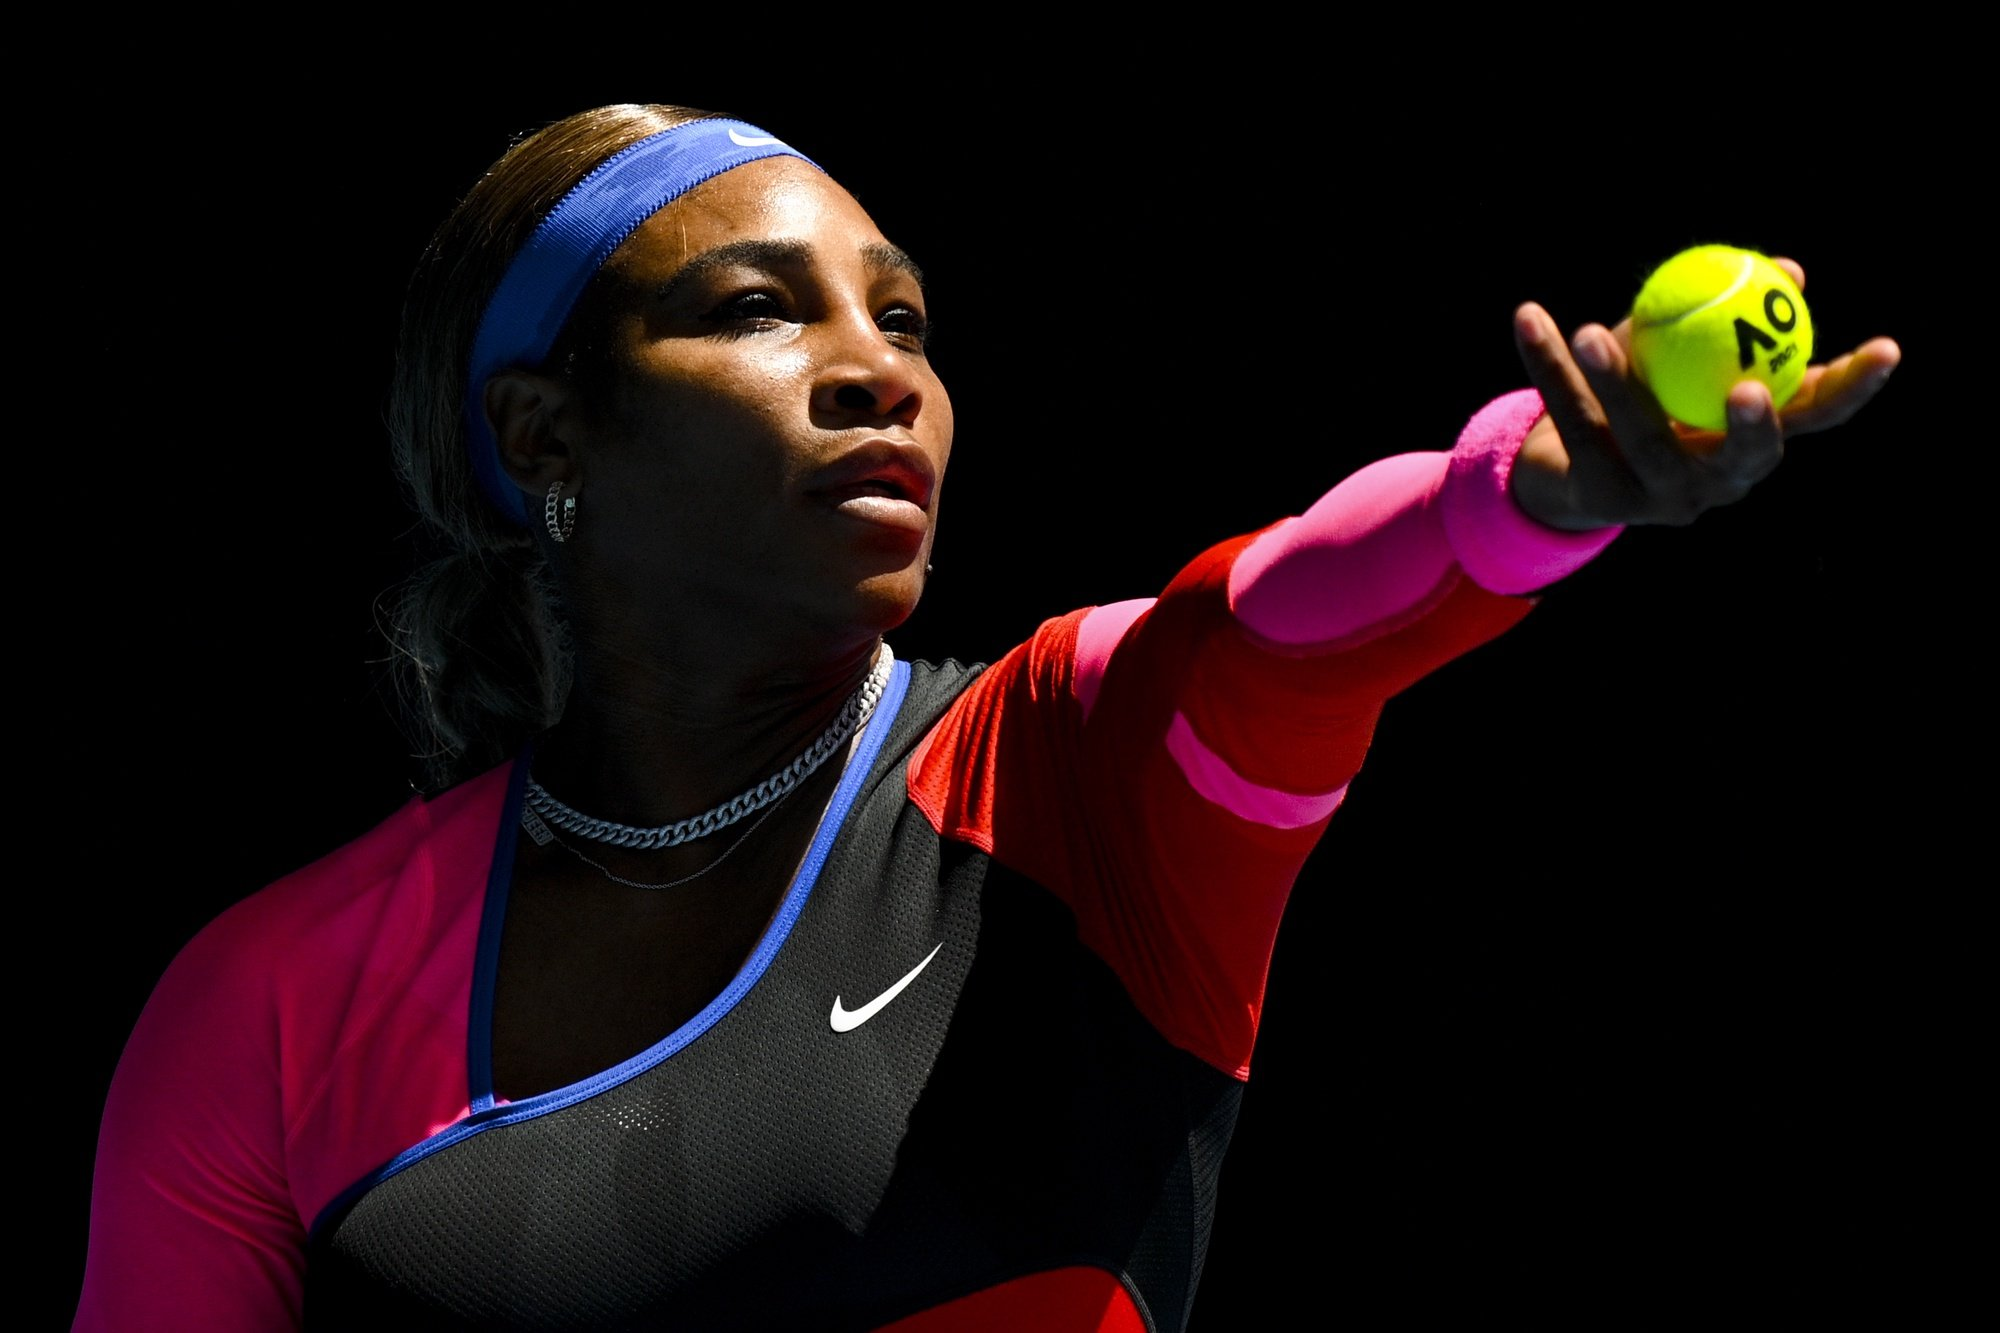 epa09005659 Serena Williams of the United States of America in action during her third round women's singles match against Anastasia Potapova of Russia at the Australian Open Grand Slam tennis tournament in Melbourne, Australia, 12 February 2021.  EPA/DEAN LEWINS